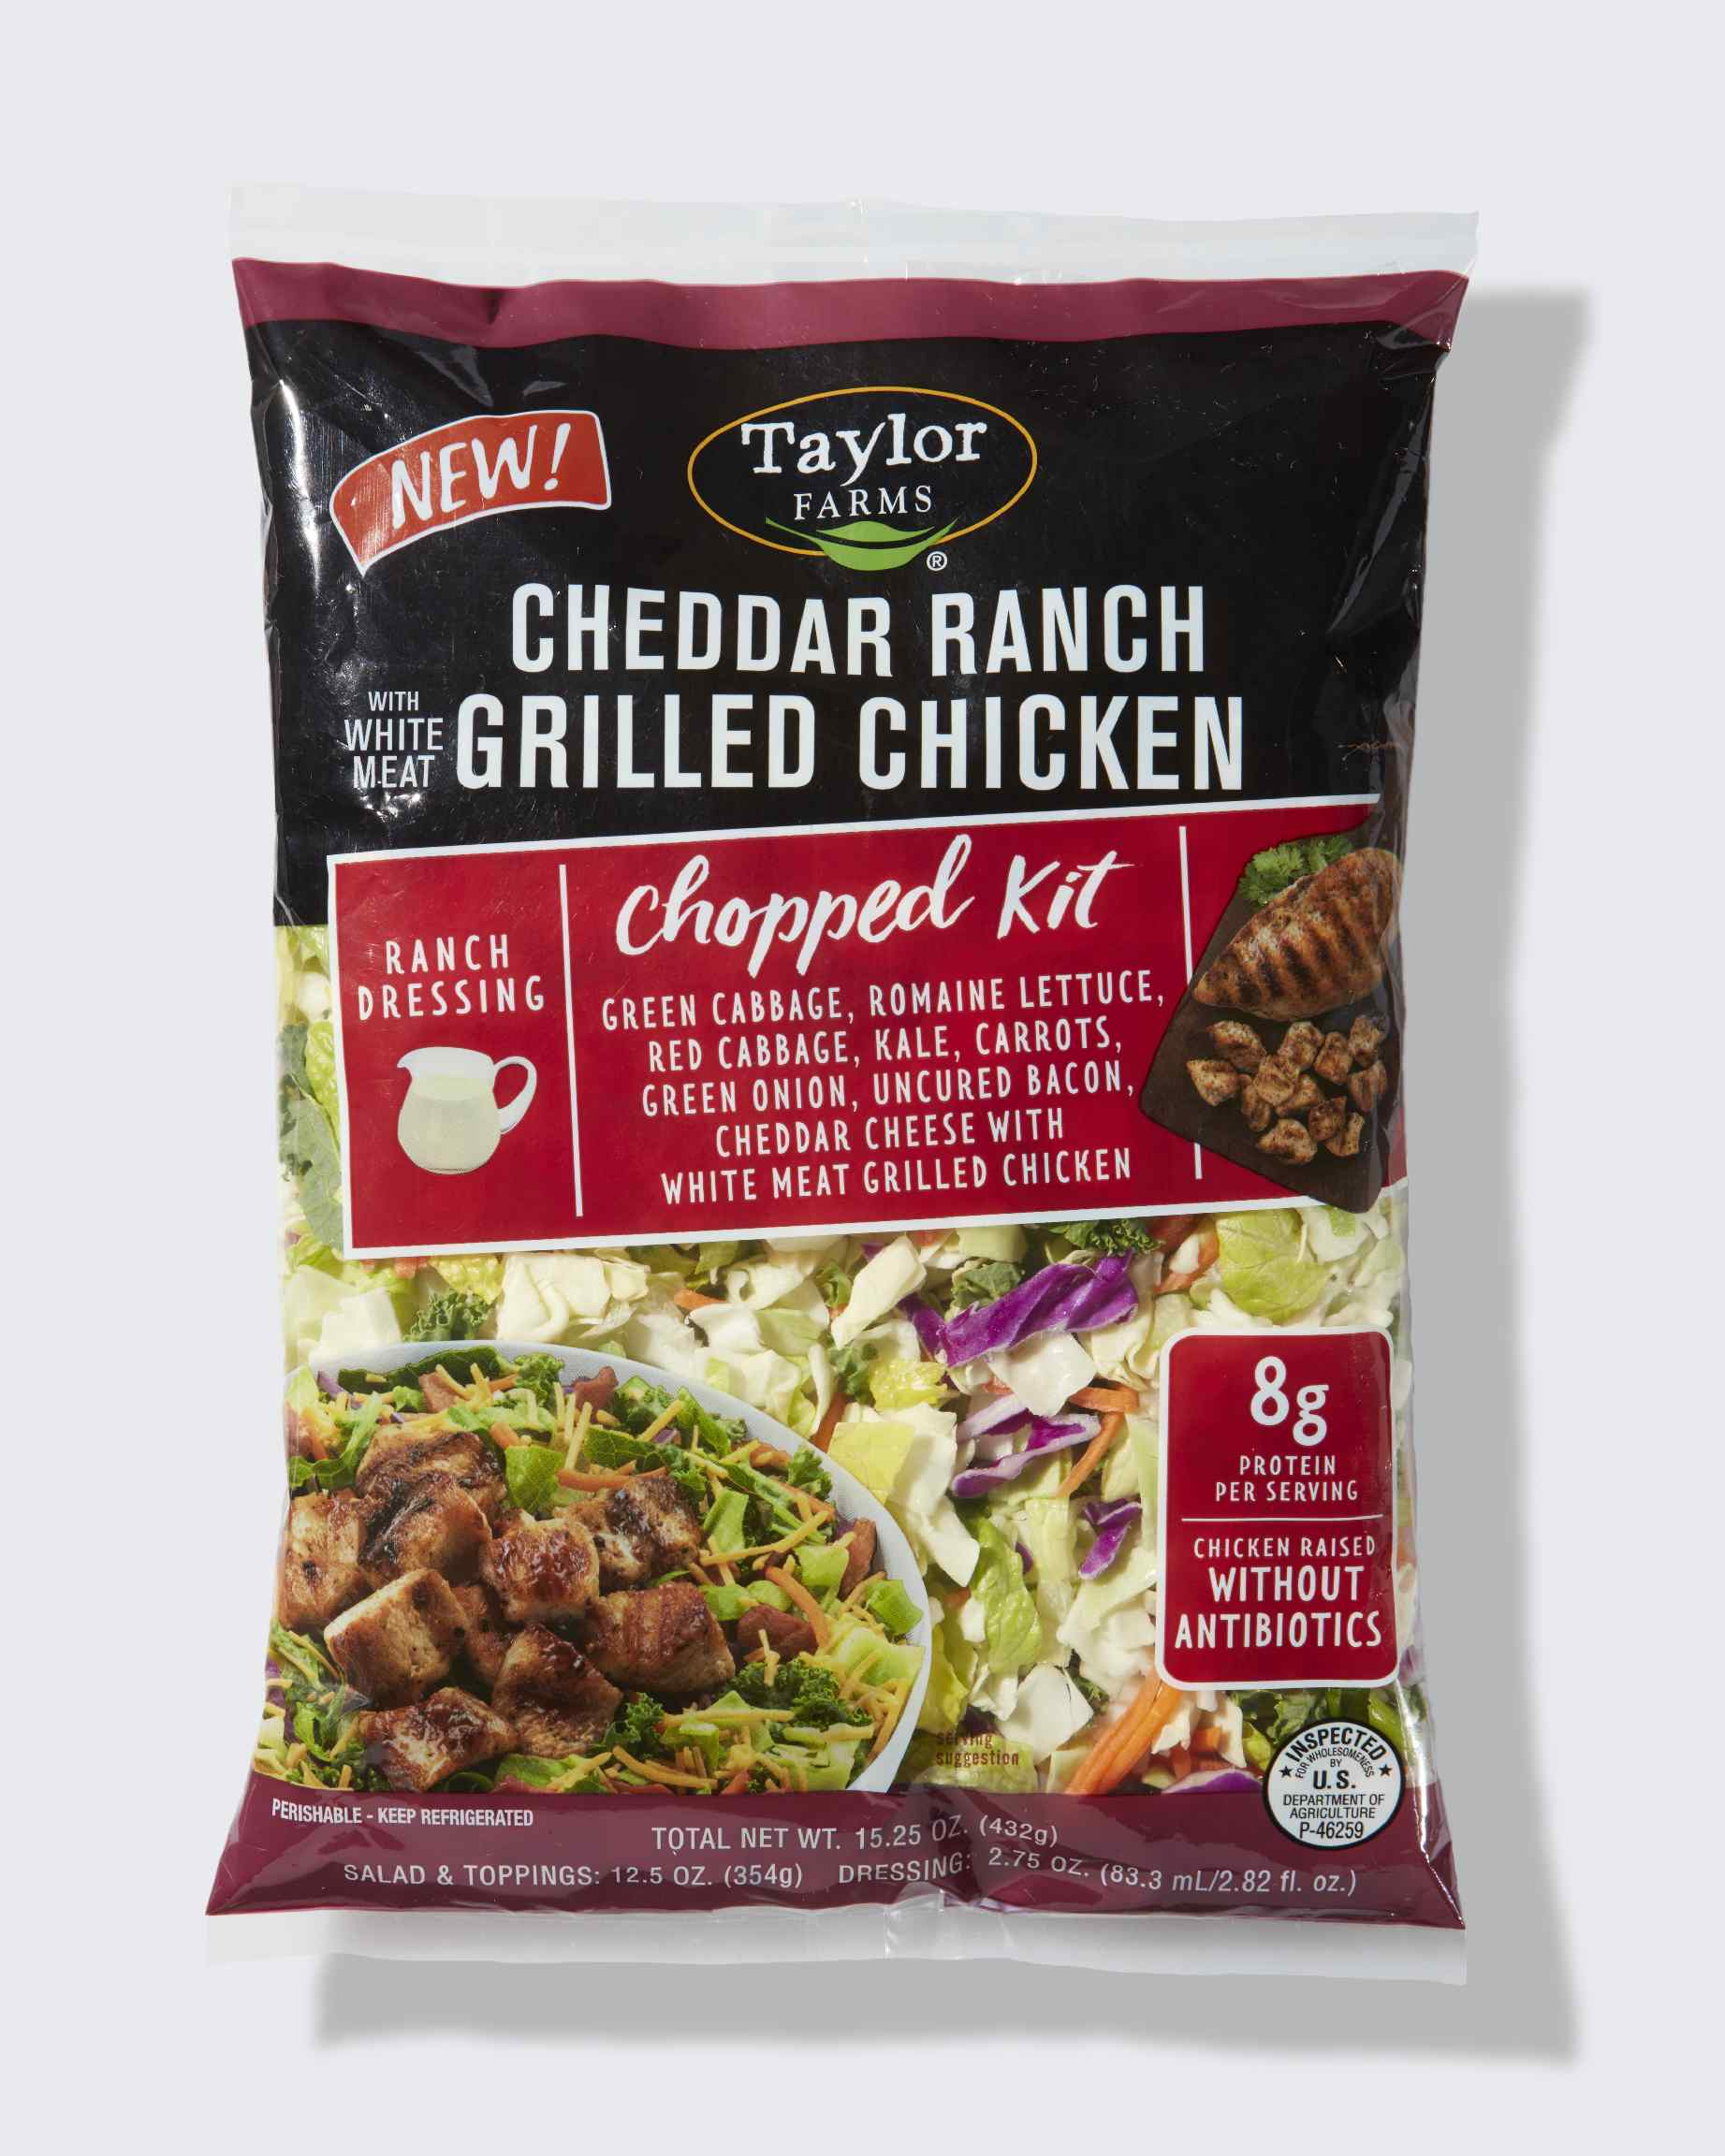 Taylor Farms Cheddar Ranch With White Meat Grilled Chicken Chopped Kit